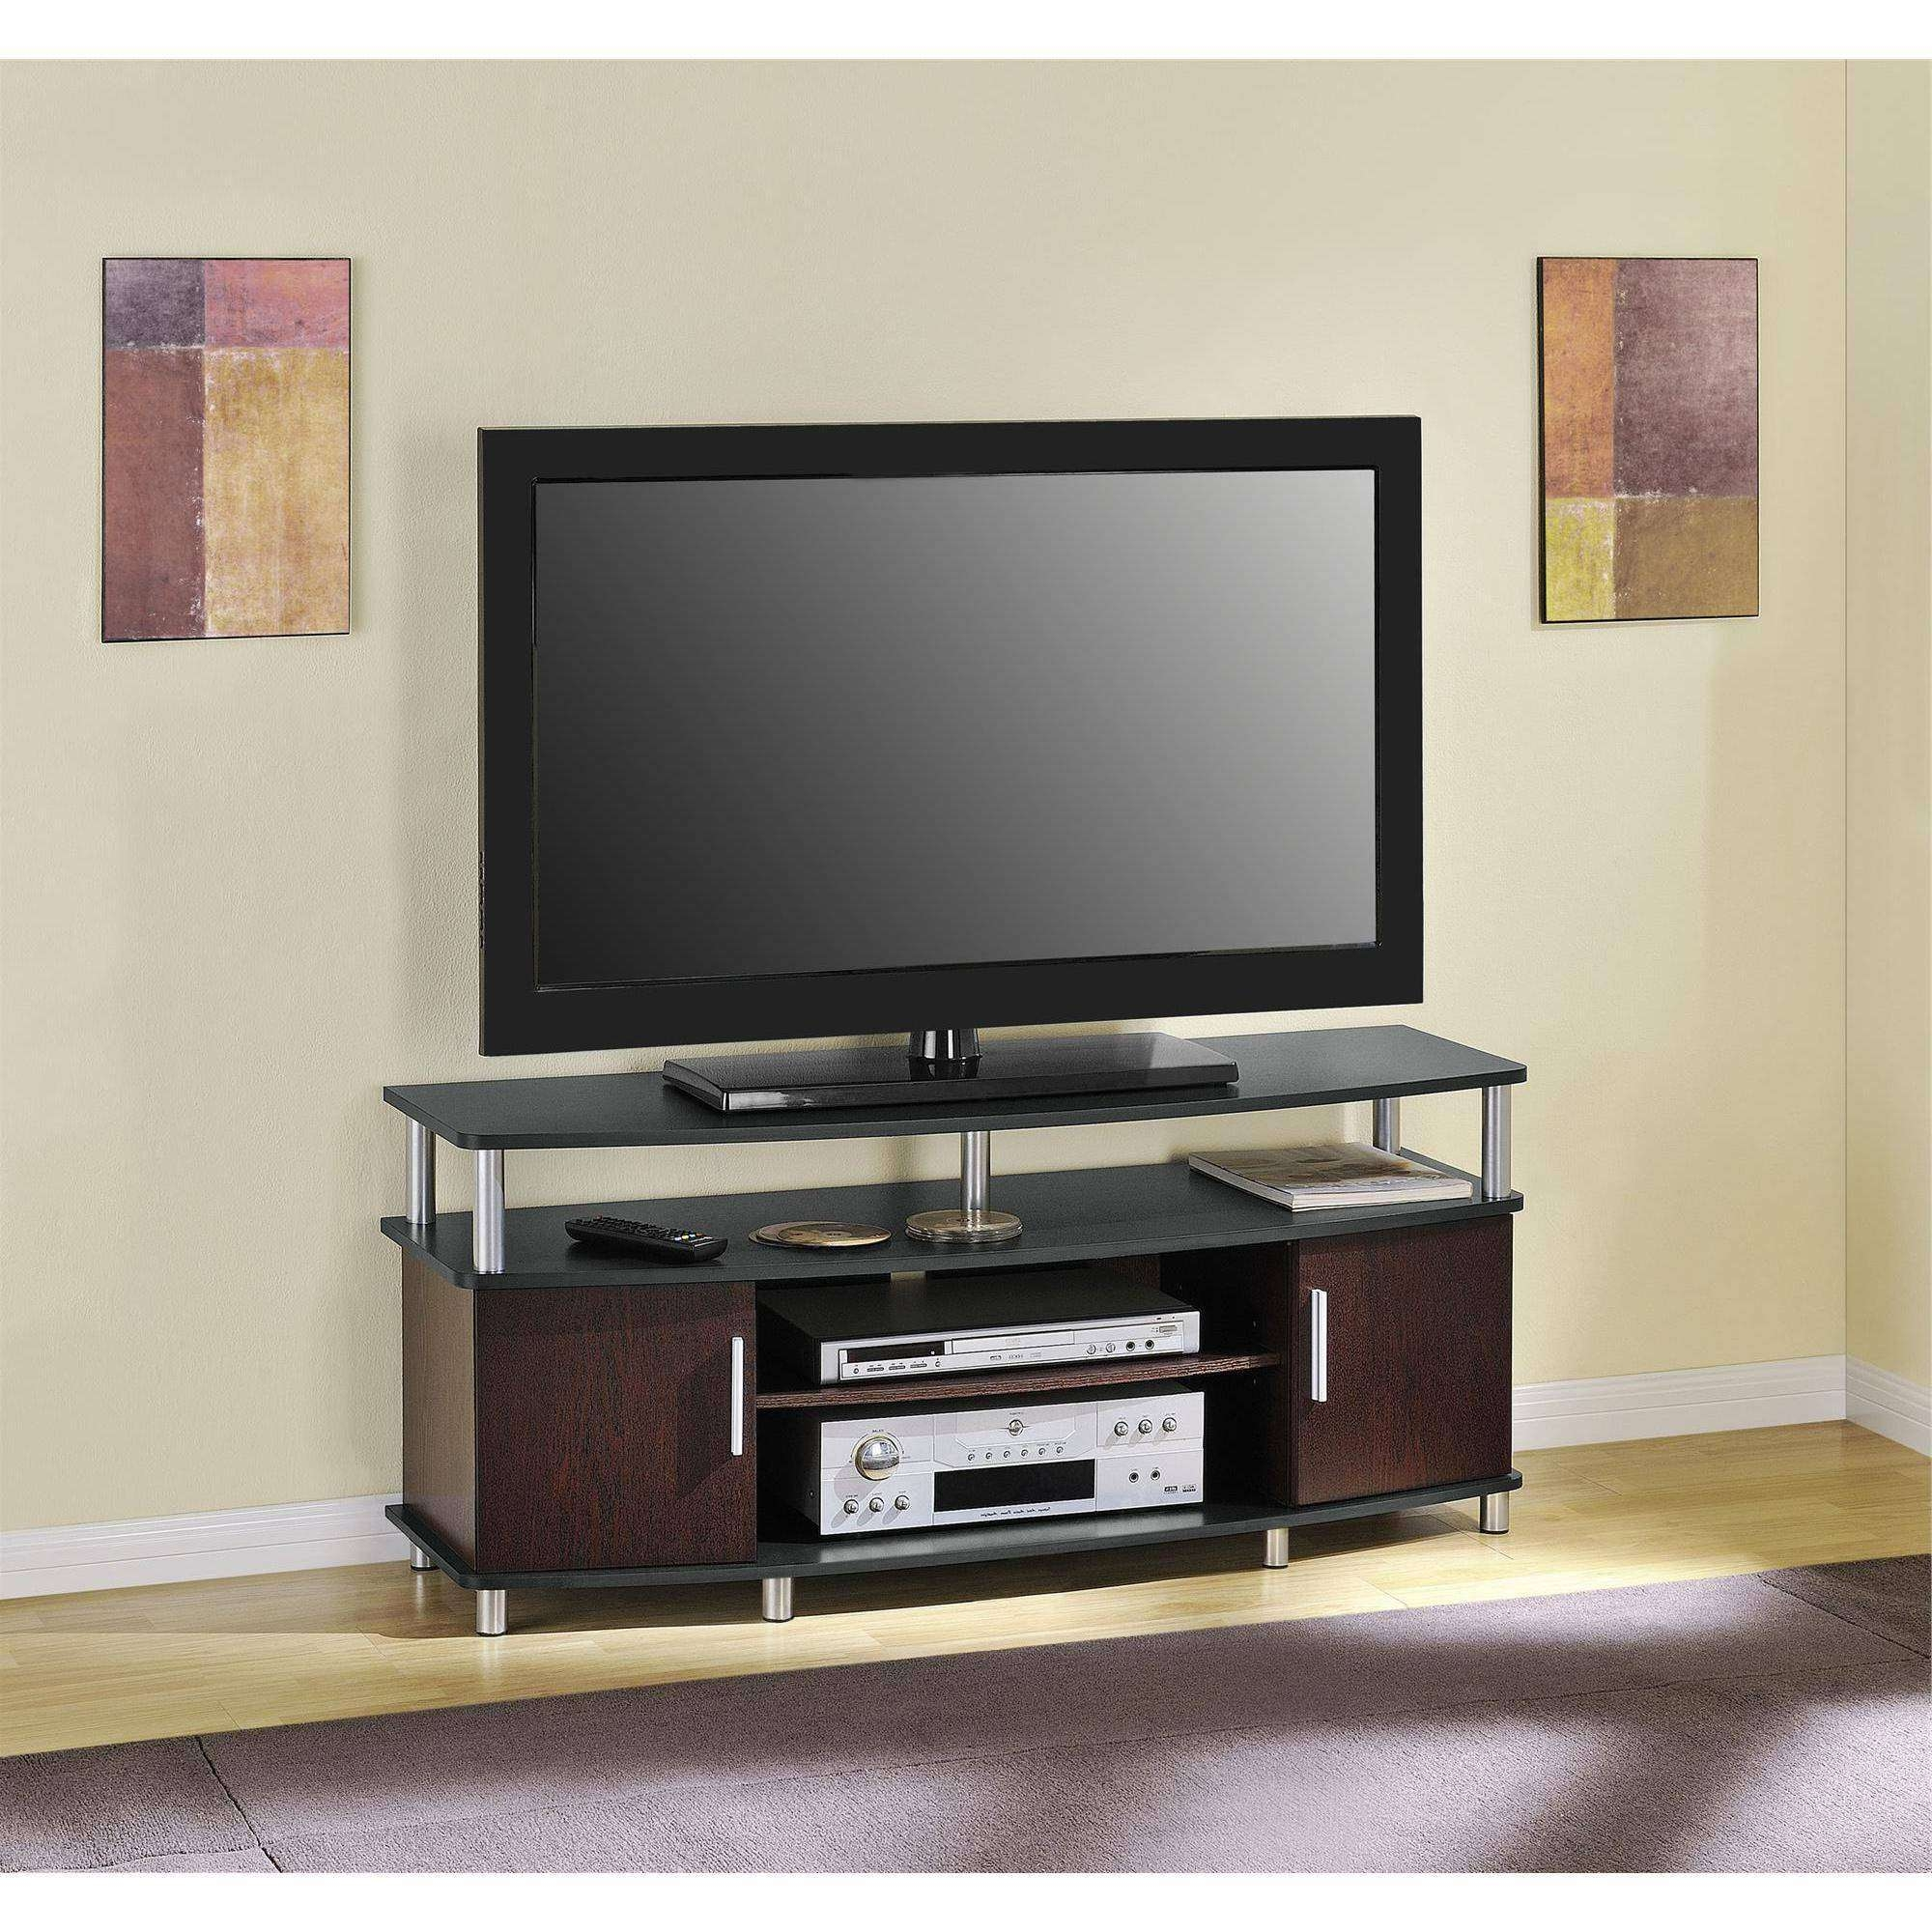 Tv : Tv Cabinet Corner Design Beautiful Black Tv Stands With With Regard To Tall Black Tv Cabinets (View 12 of 20)